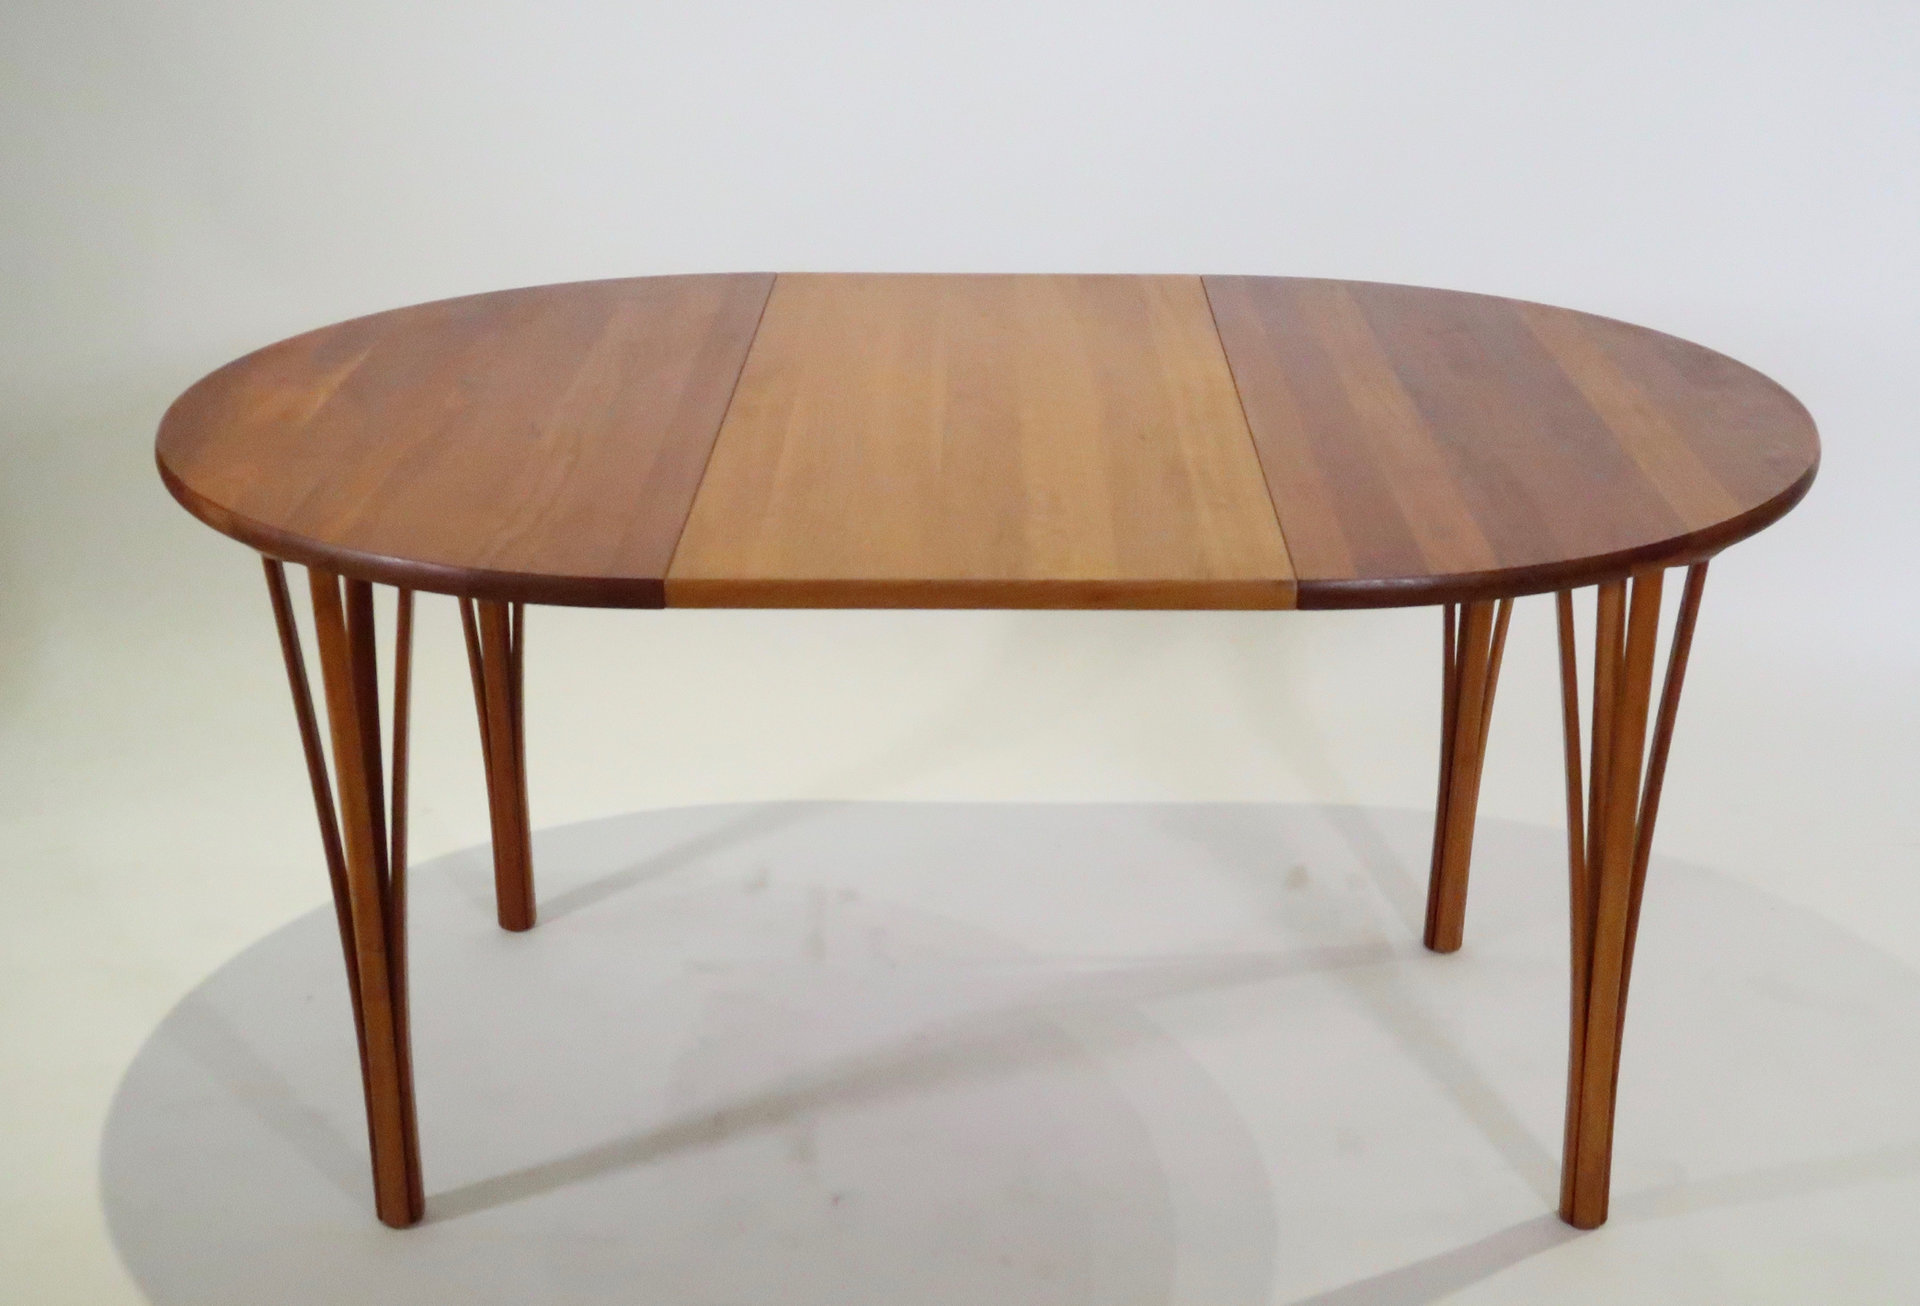 Table scandinave ronde en teck avec allonge